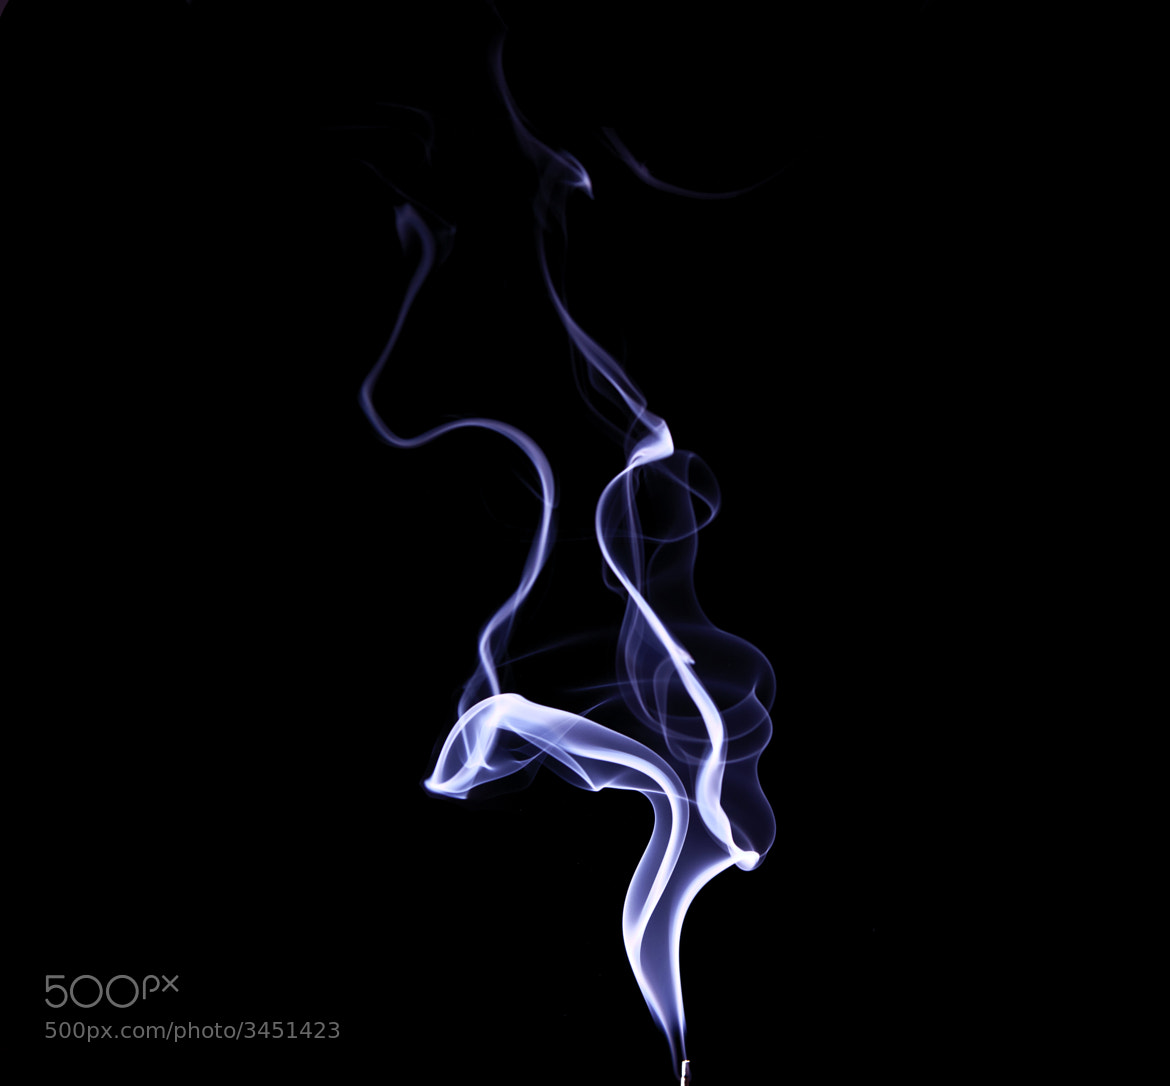 Photograph Smoke in peace by Cal Redback on 500px